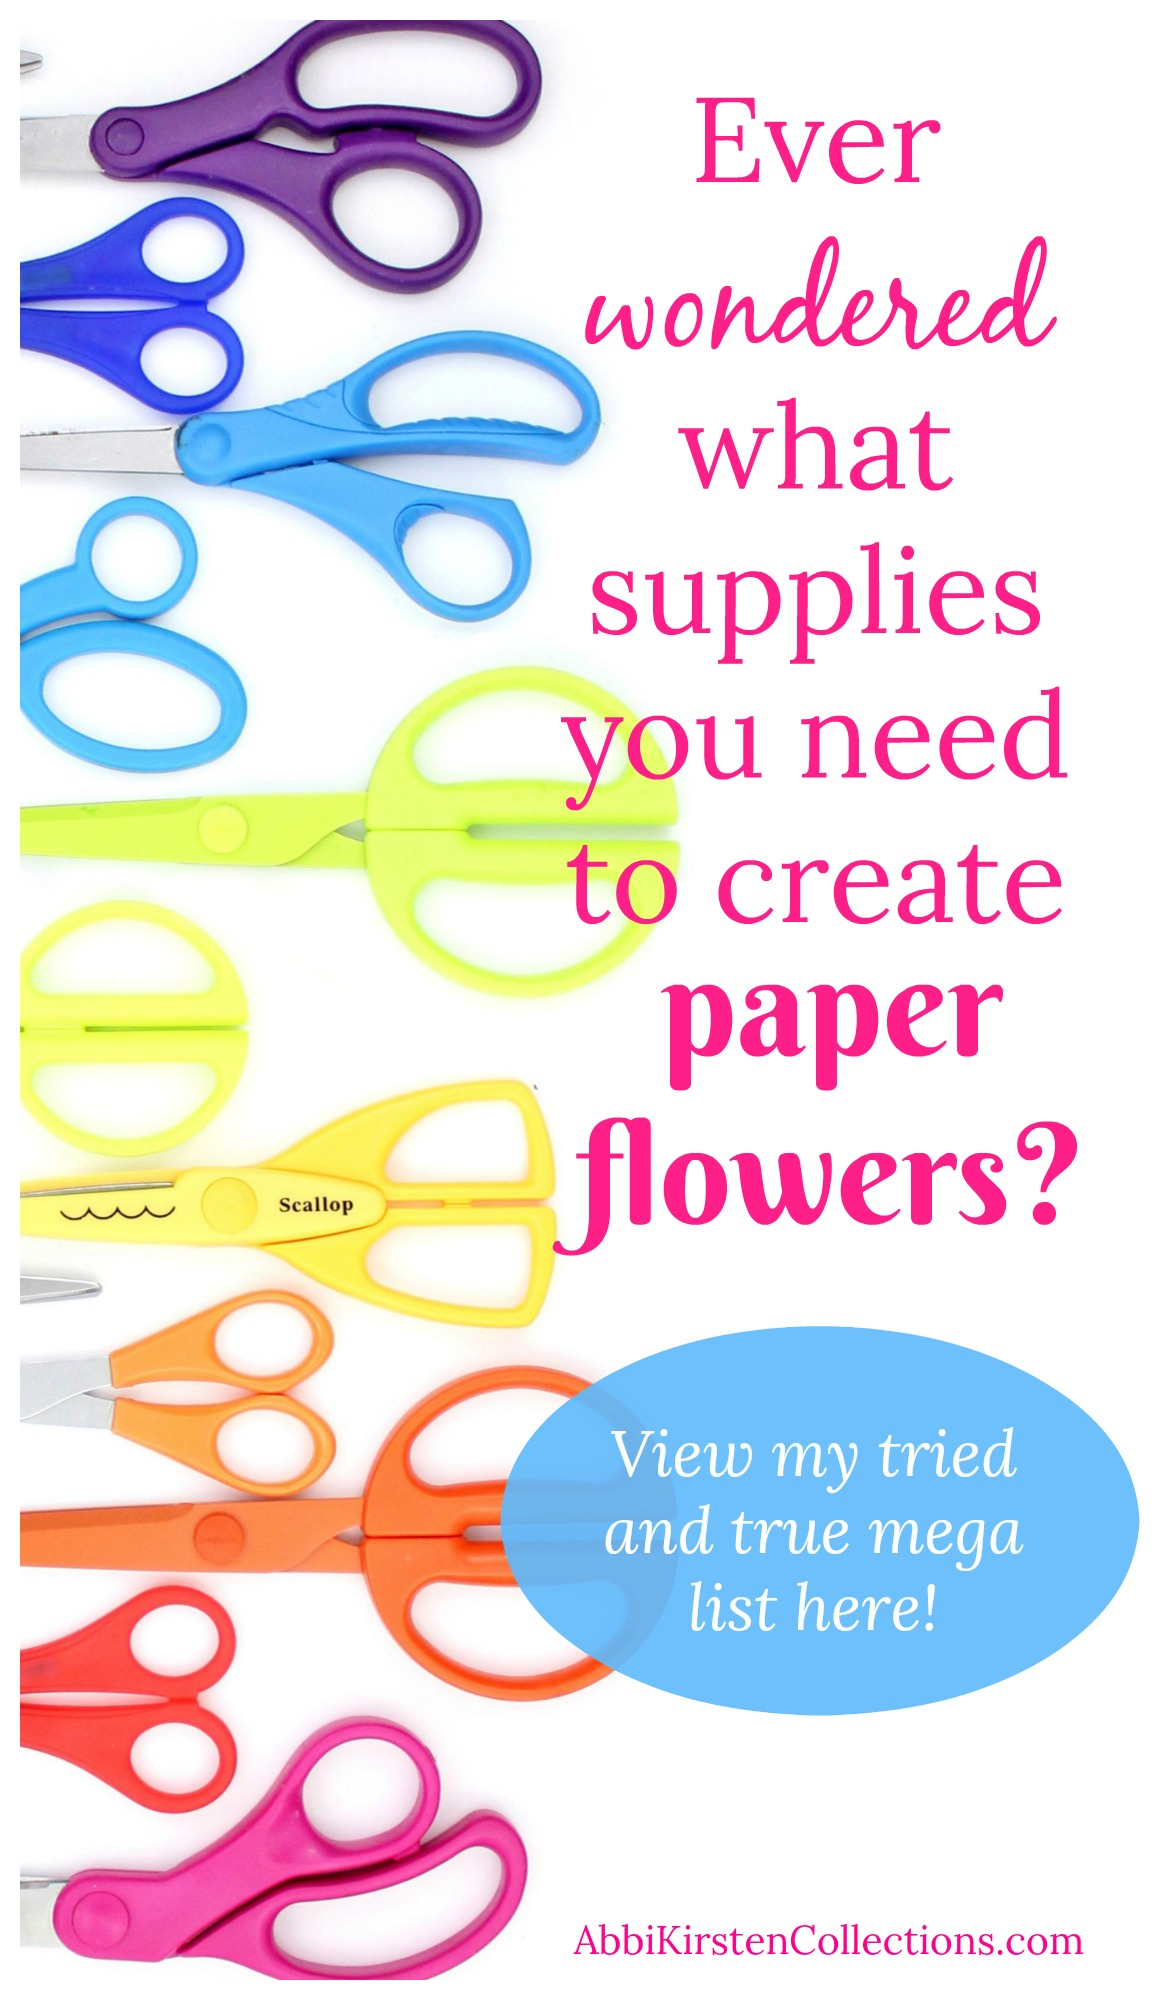 How to make giant hawaiian paper flowers abbi kirsten collections lets connect izmirmasajfo Gallery